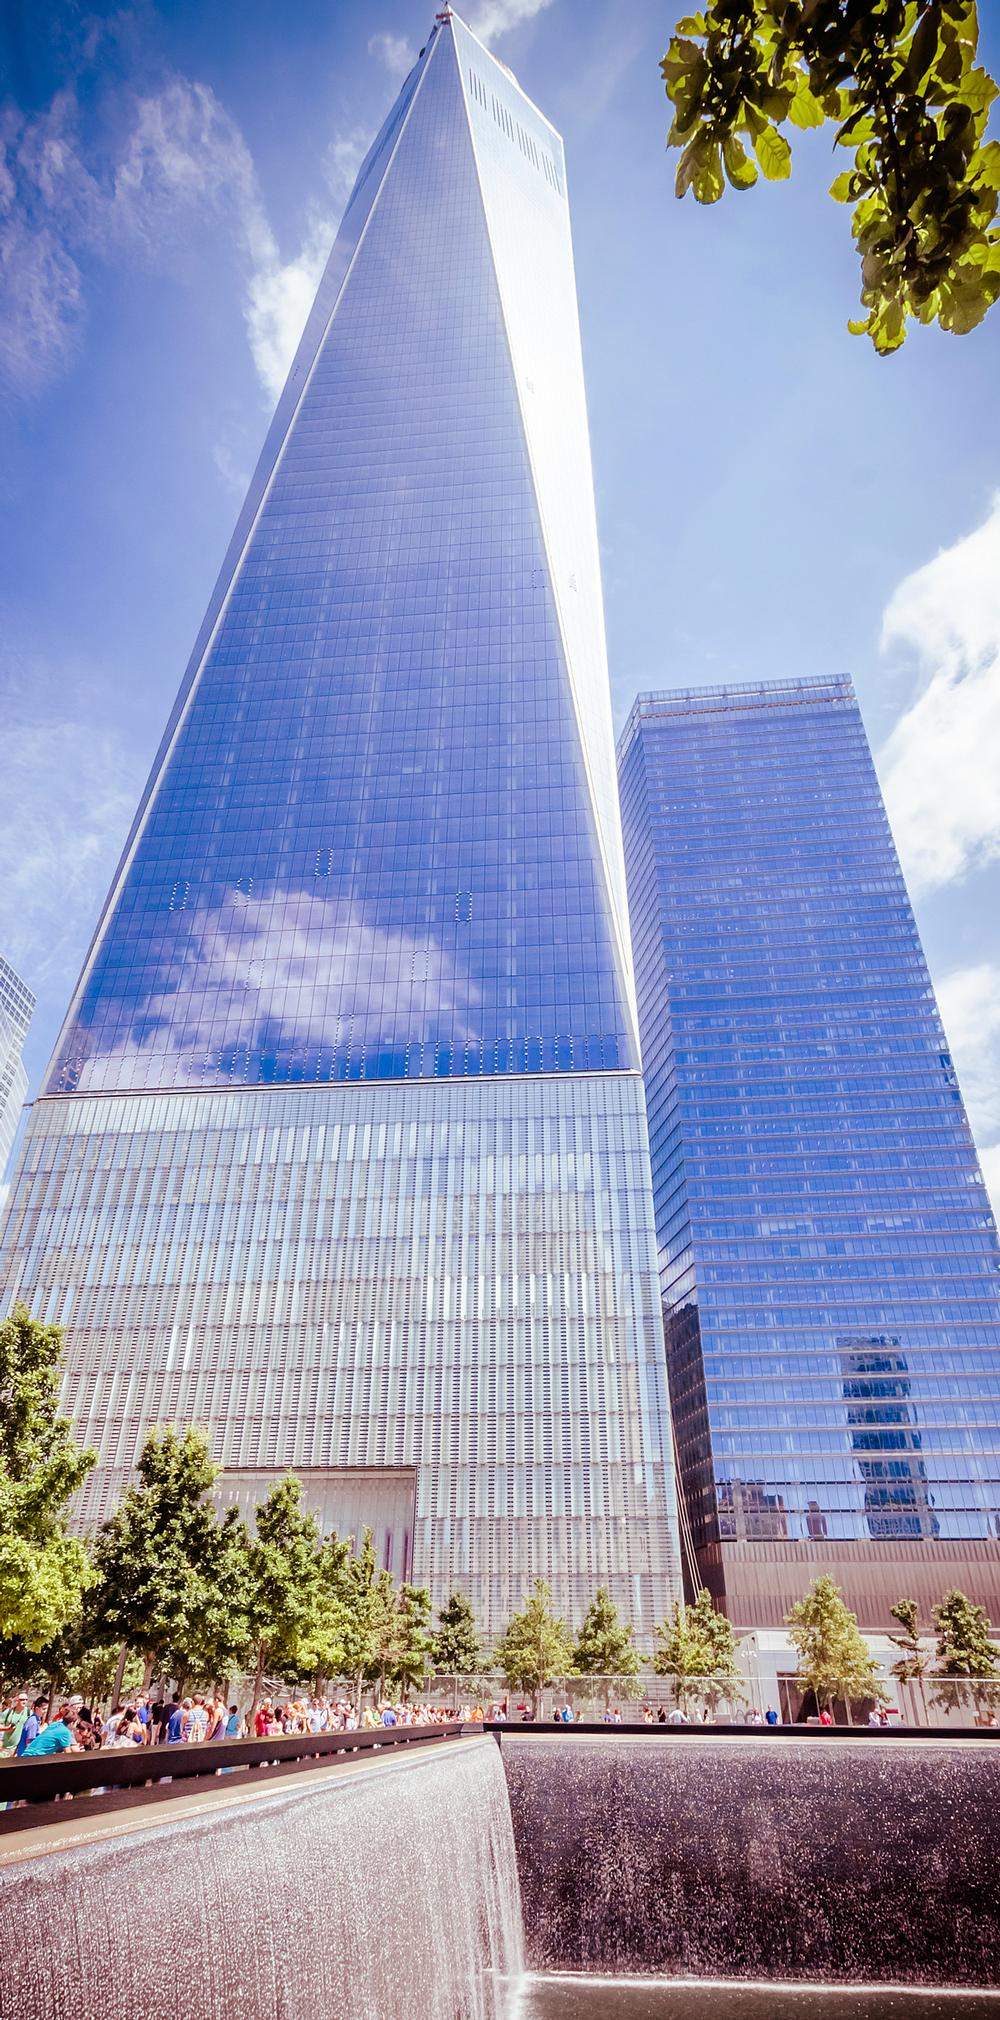 The new One World Trade Center is 541m high / © istockphoto.com/alexpro9500